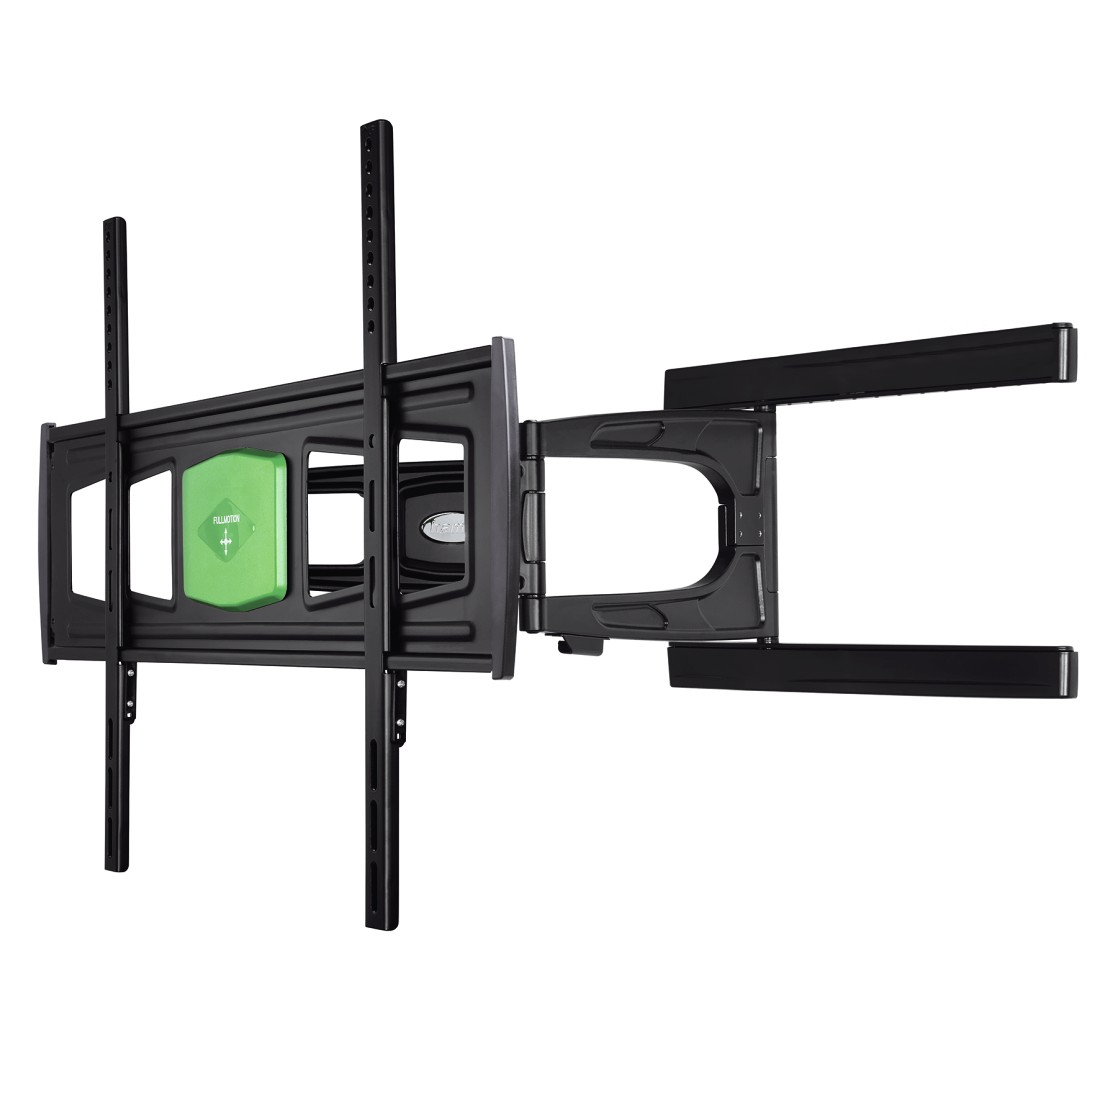 "abx High-Res Image - Hama, FULLMOTION TV Wall Bracket, 3 Stars, 165cm (65""), 2 Arm, black"